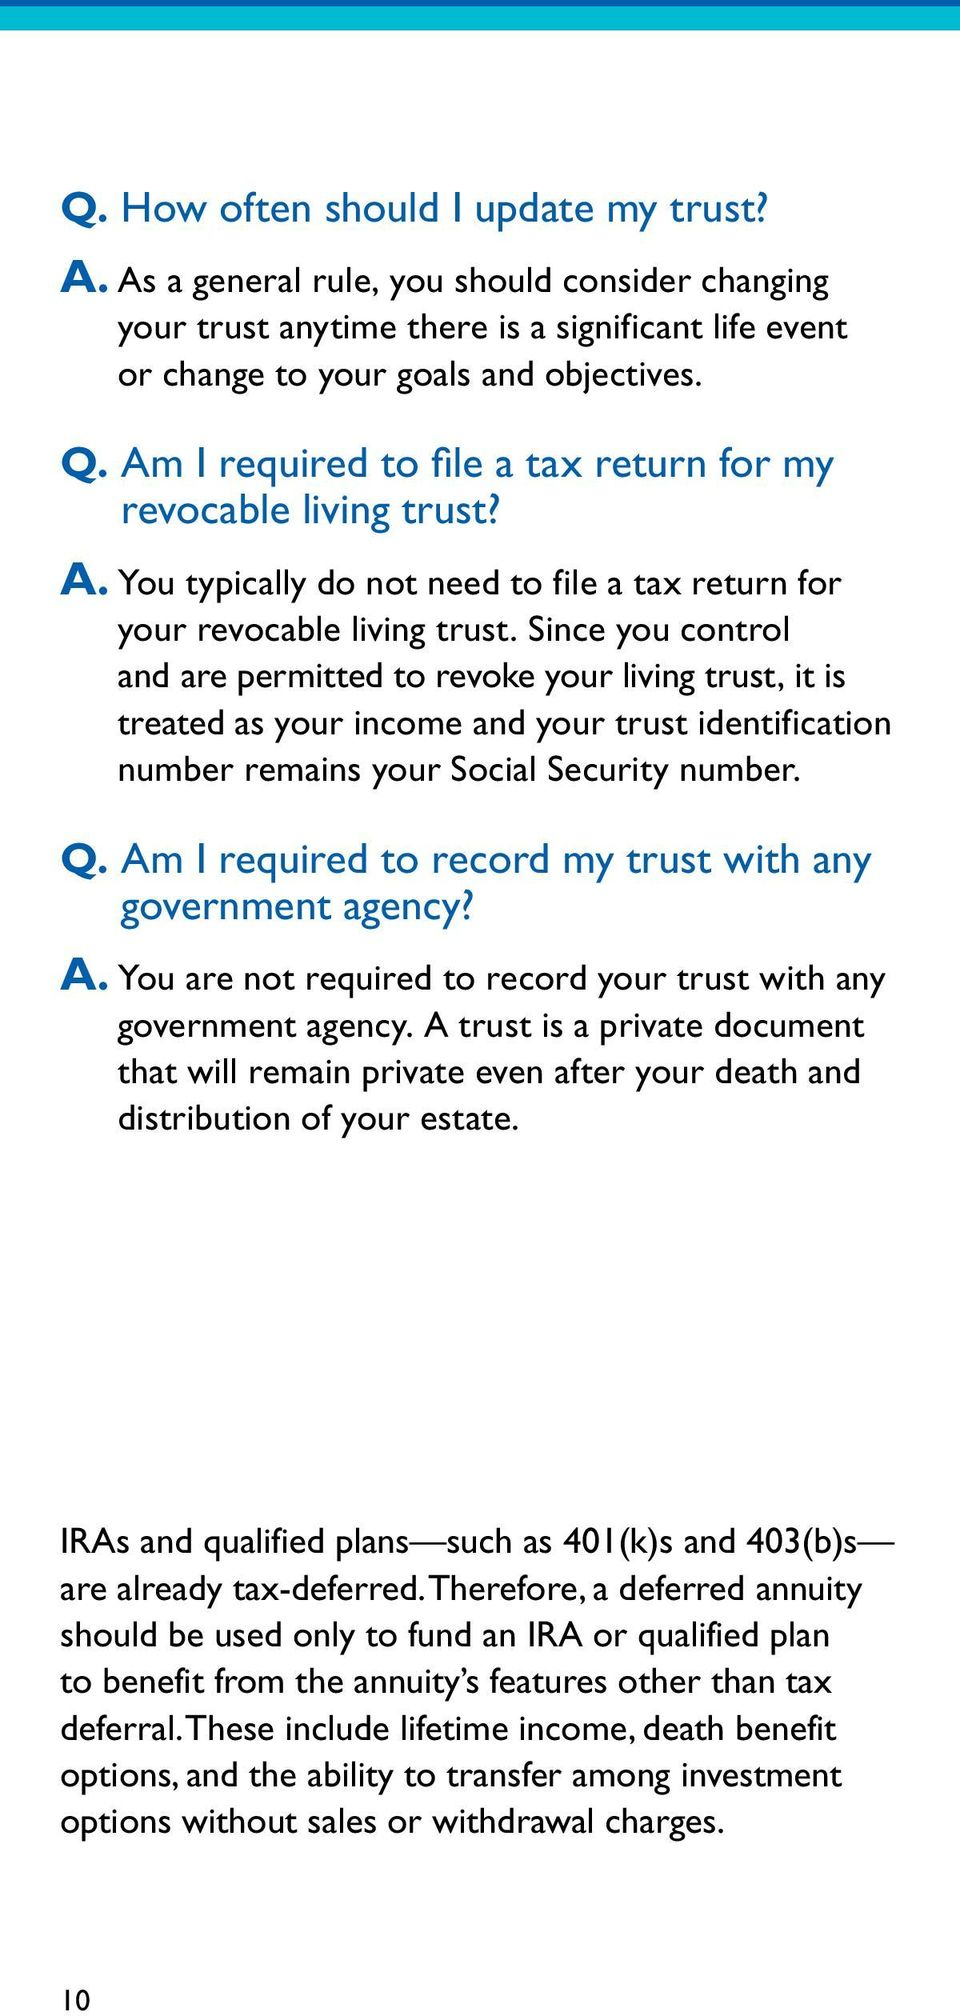 Since you control and are permitted to revoke your living trust, it is treated as your income and your trust identification number remains your Social Security number. Q.